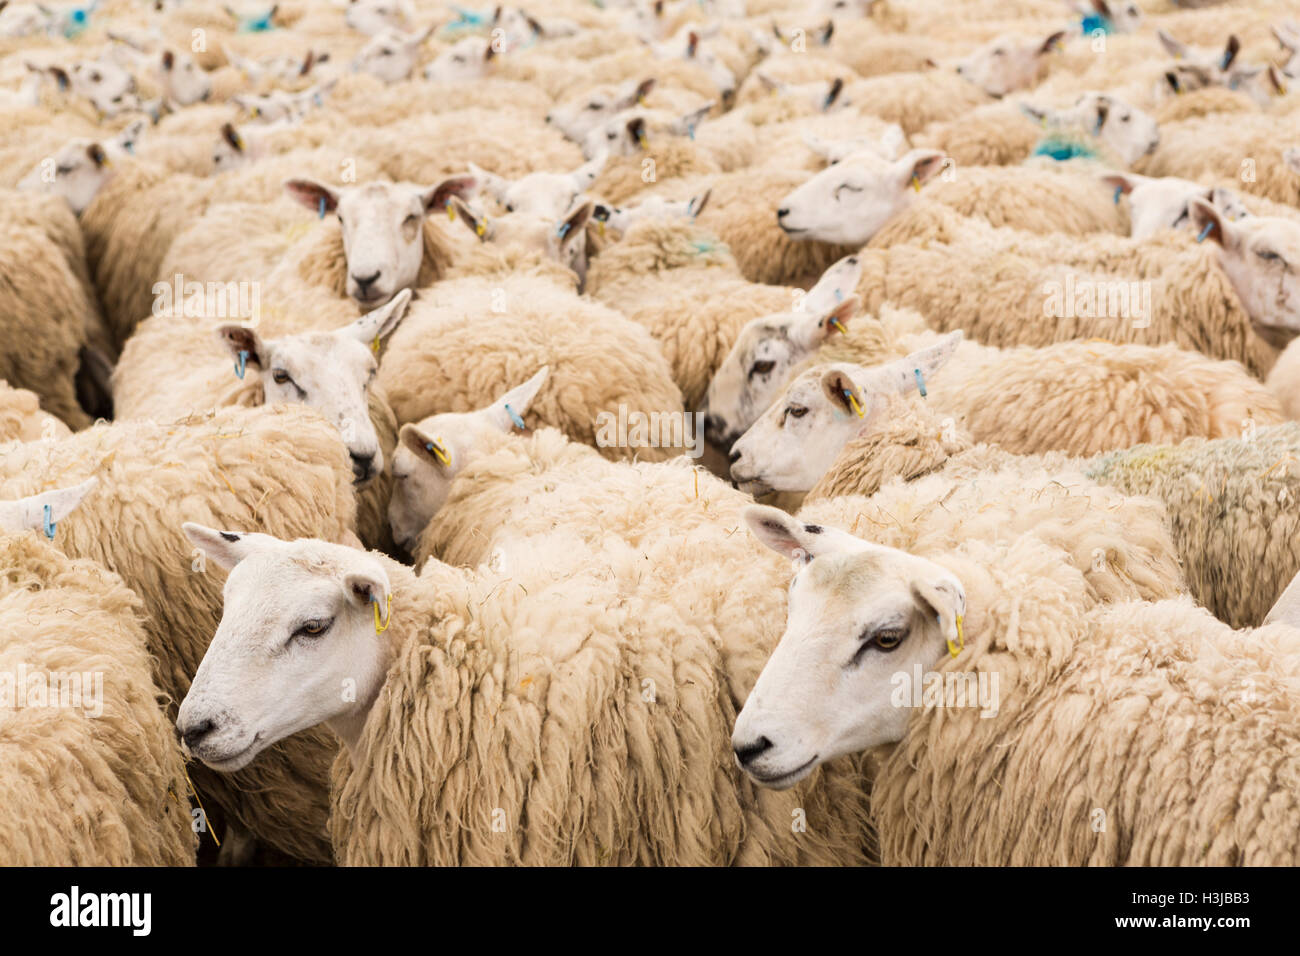 Sheep herded into a pen Stock Photo